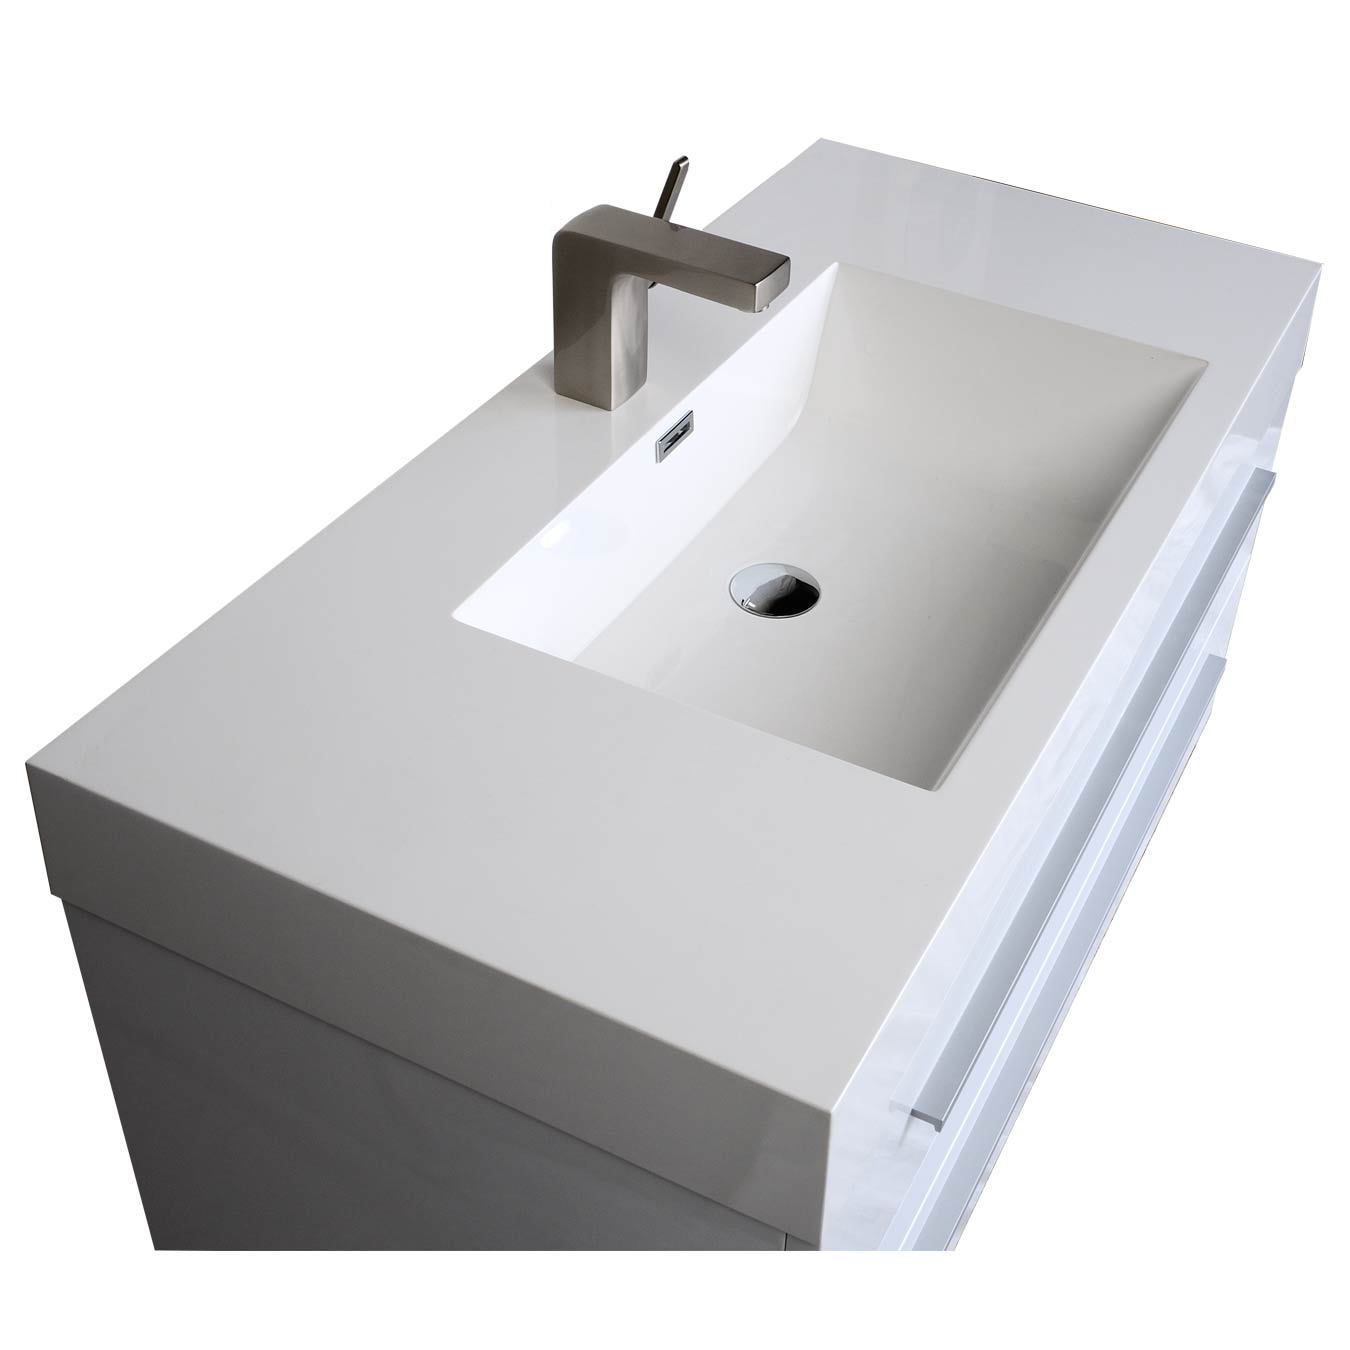 35 5 in wall mount modern bathroom vanity in high gloss white tn m900